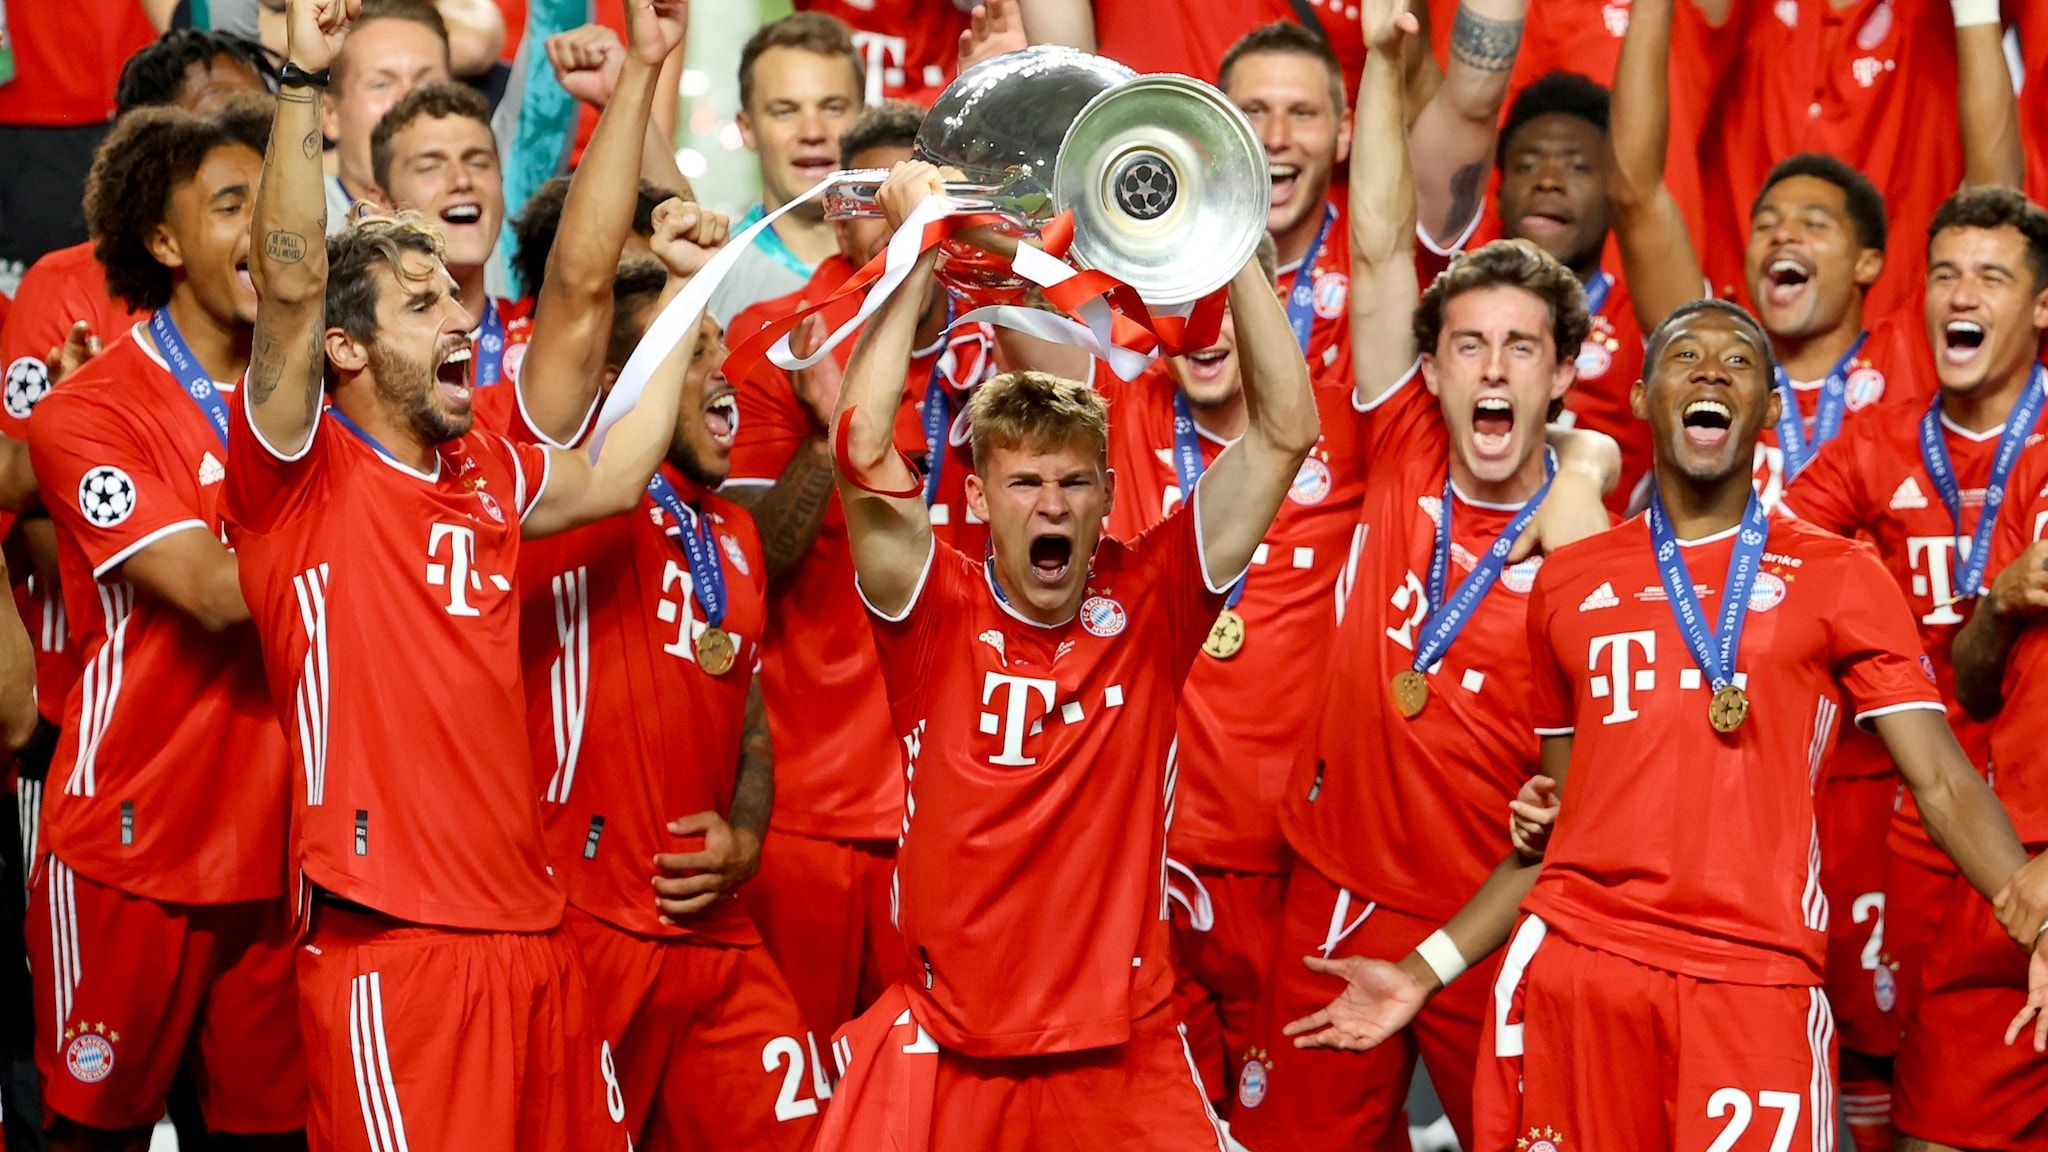 FC Bayern Munich UEFA Champions League 2020 Wallpapers